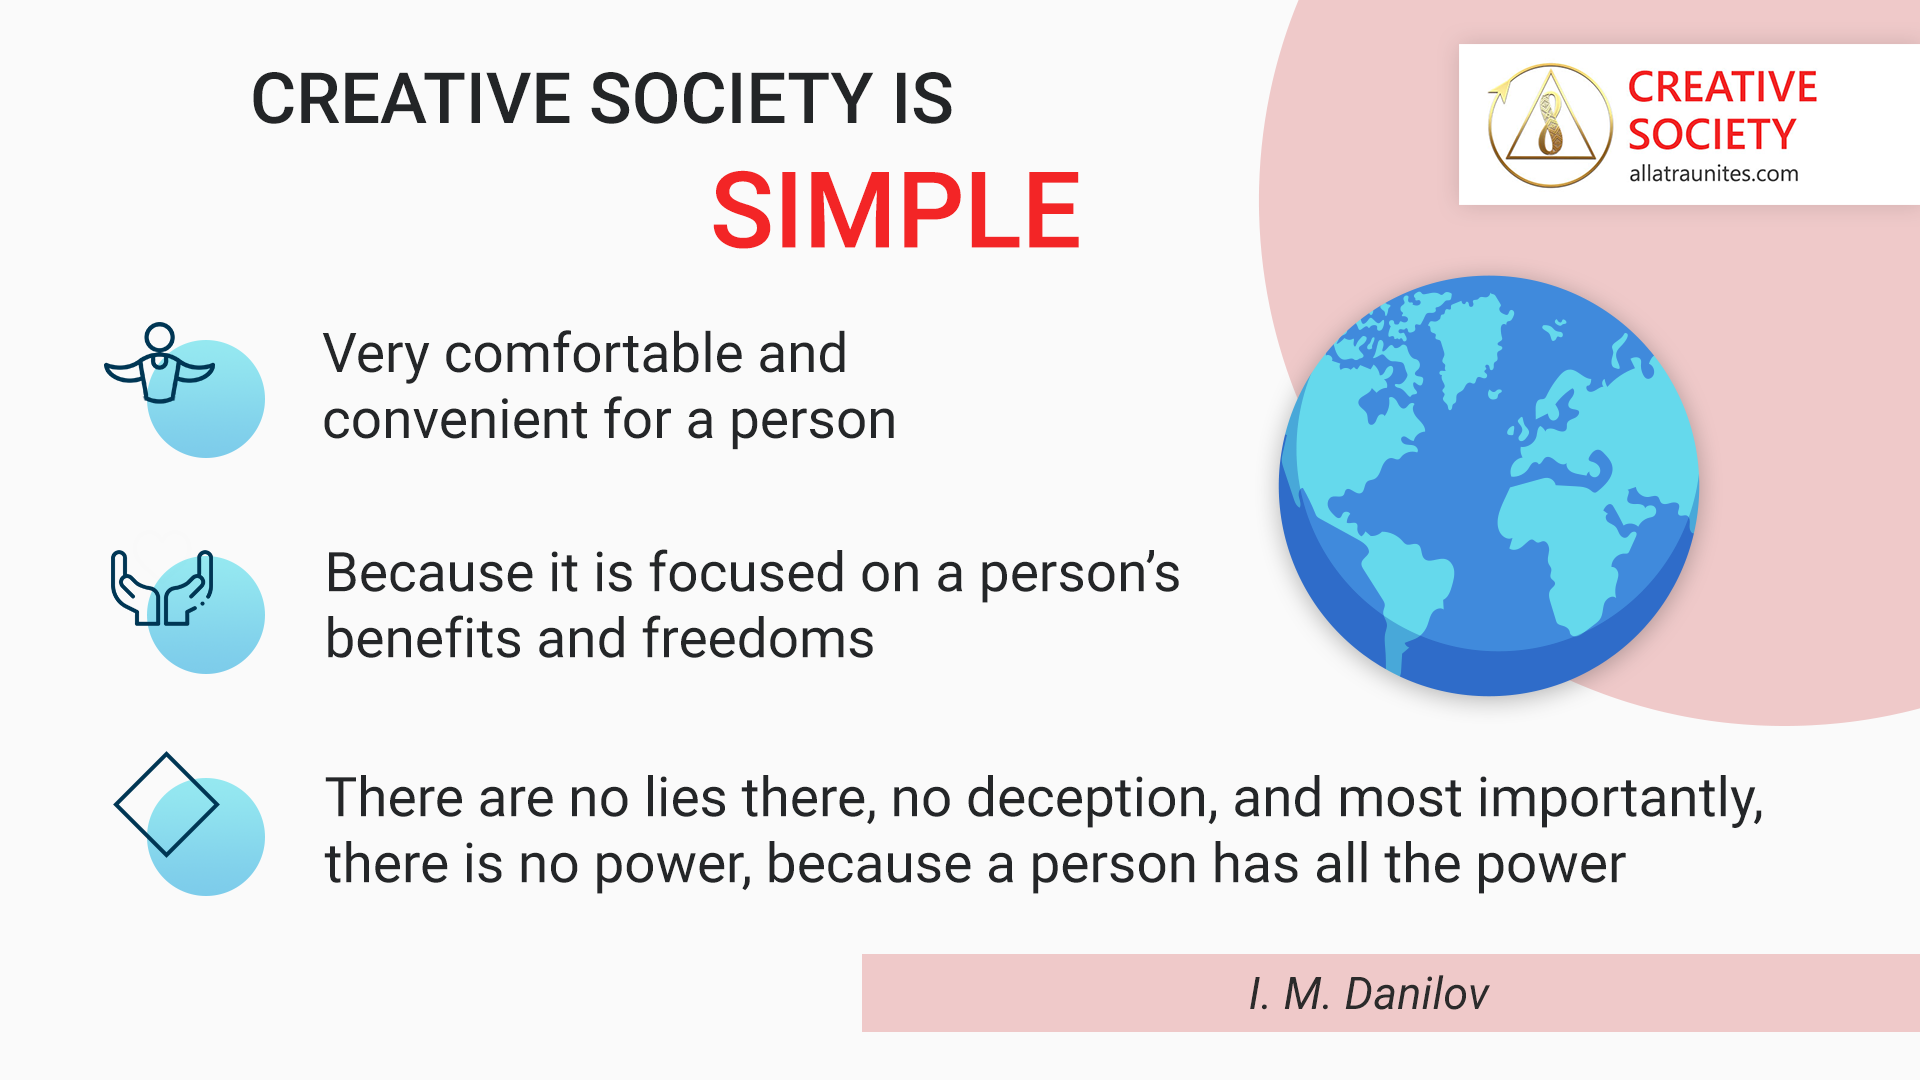 The Creative Society is simple